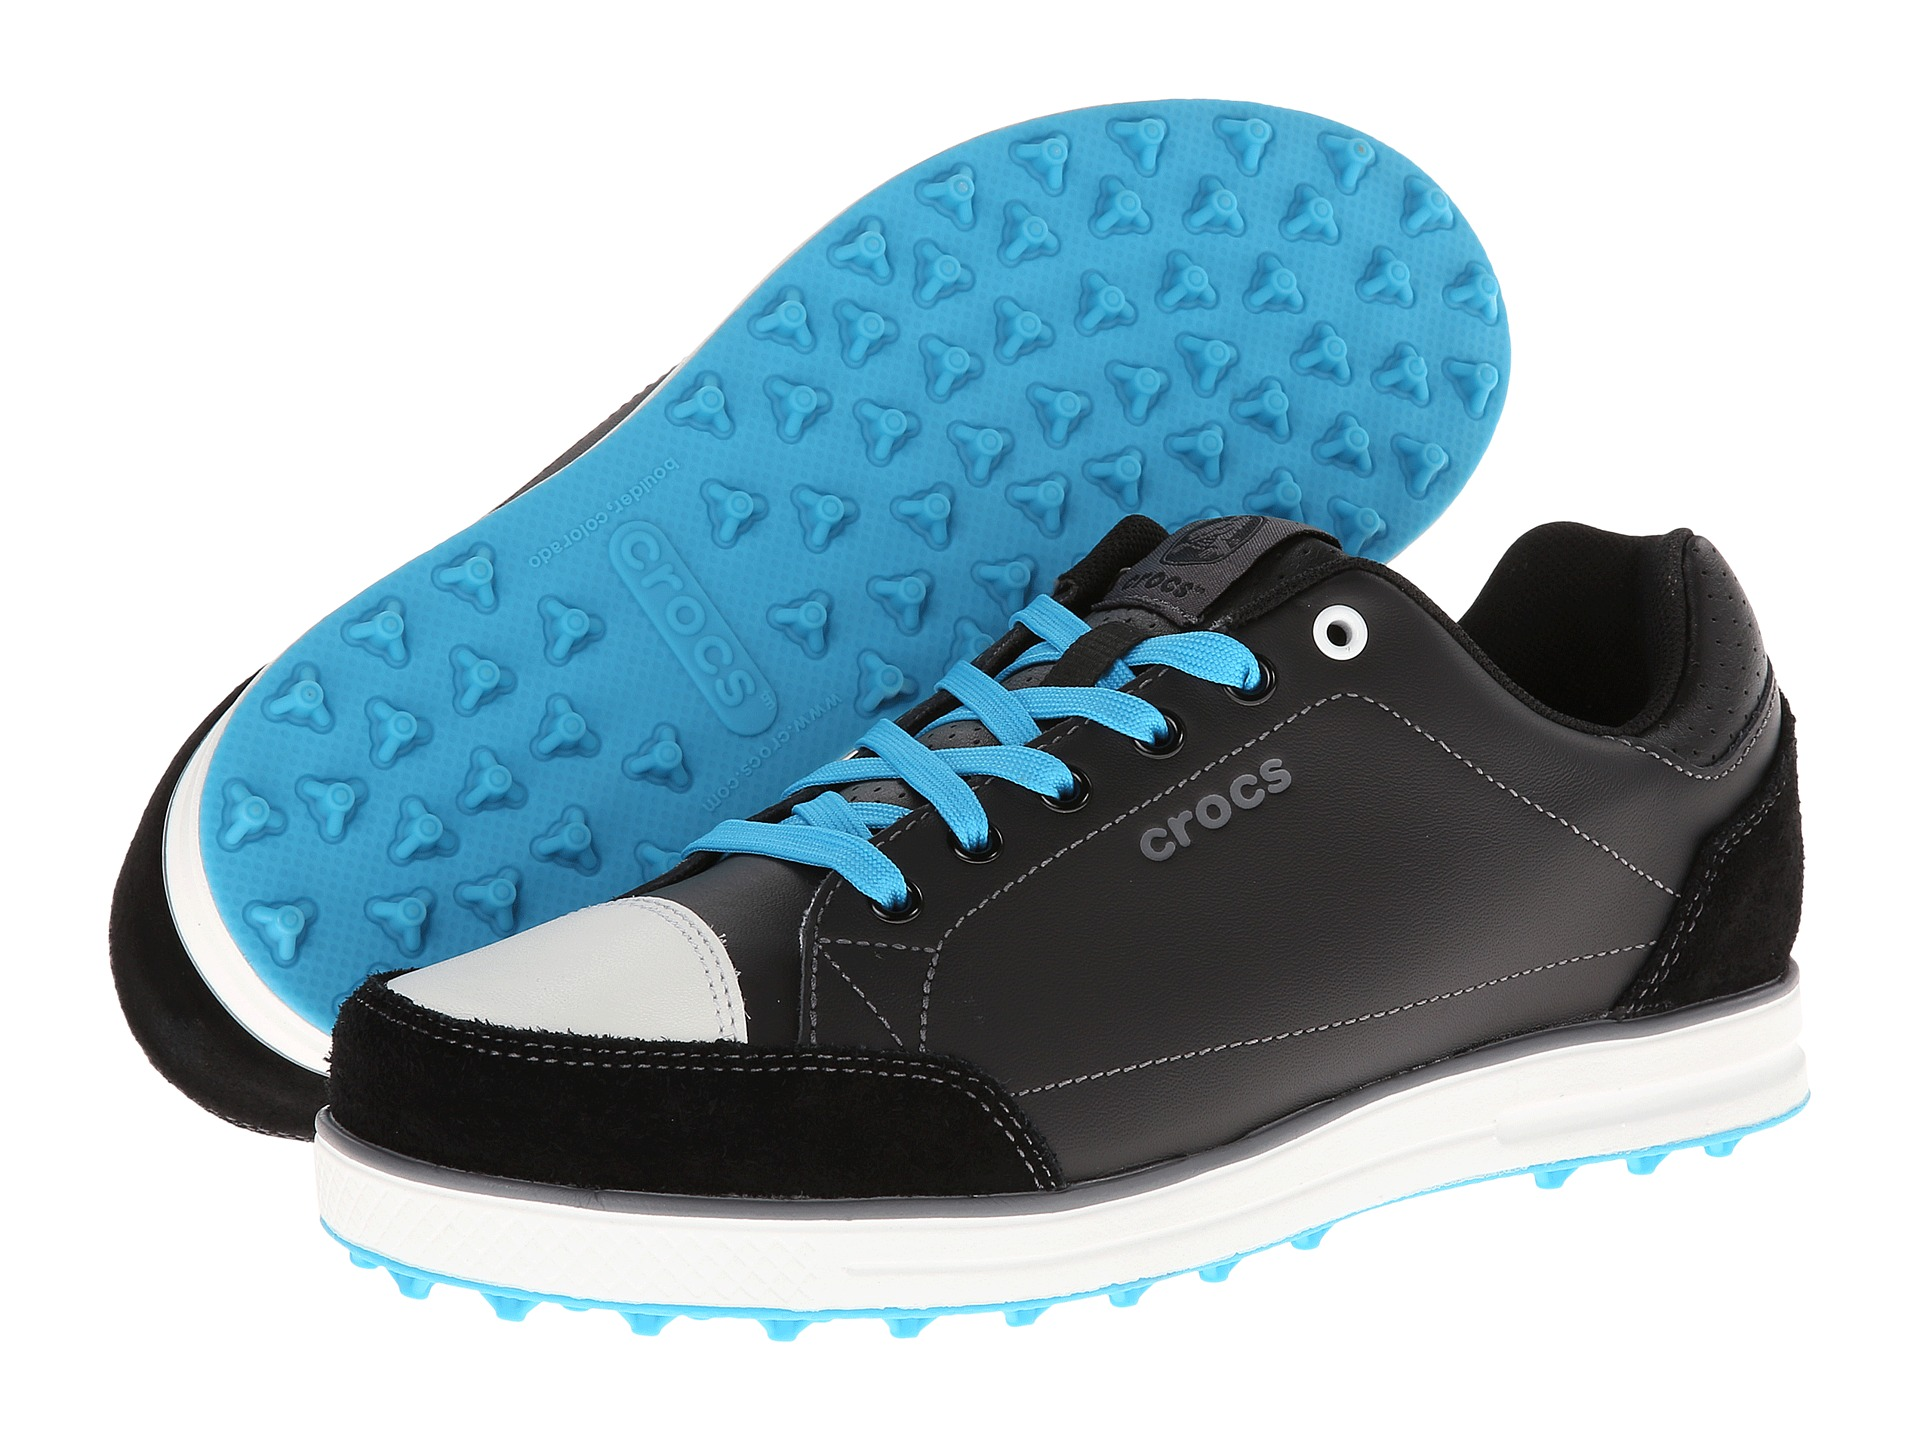 Crocs Karlson Golf Shoes Review